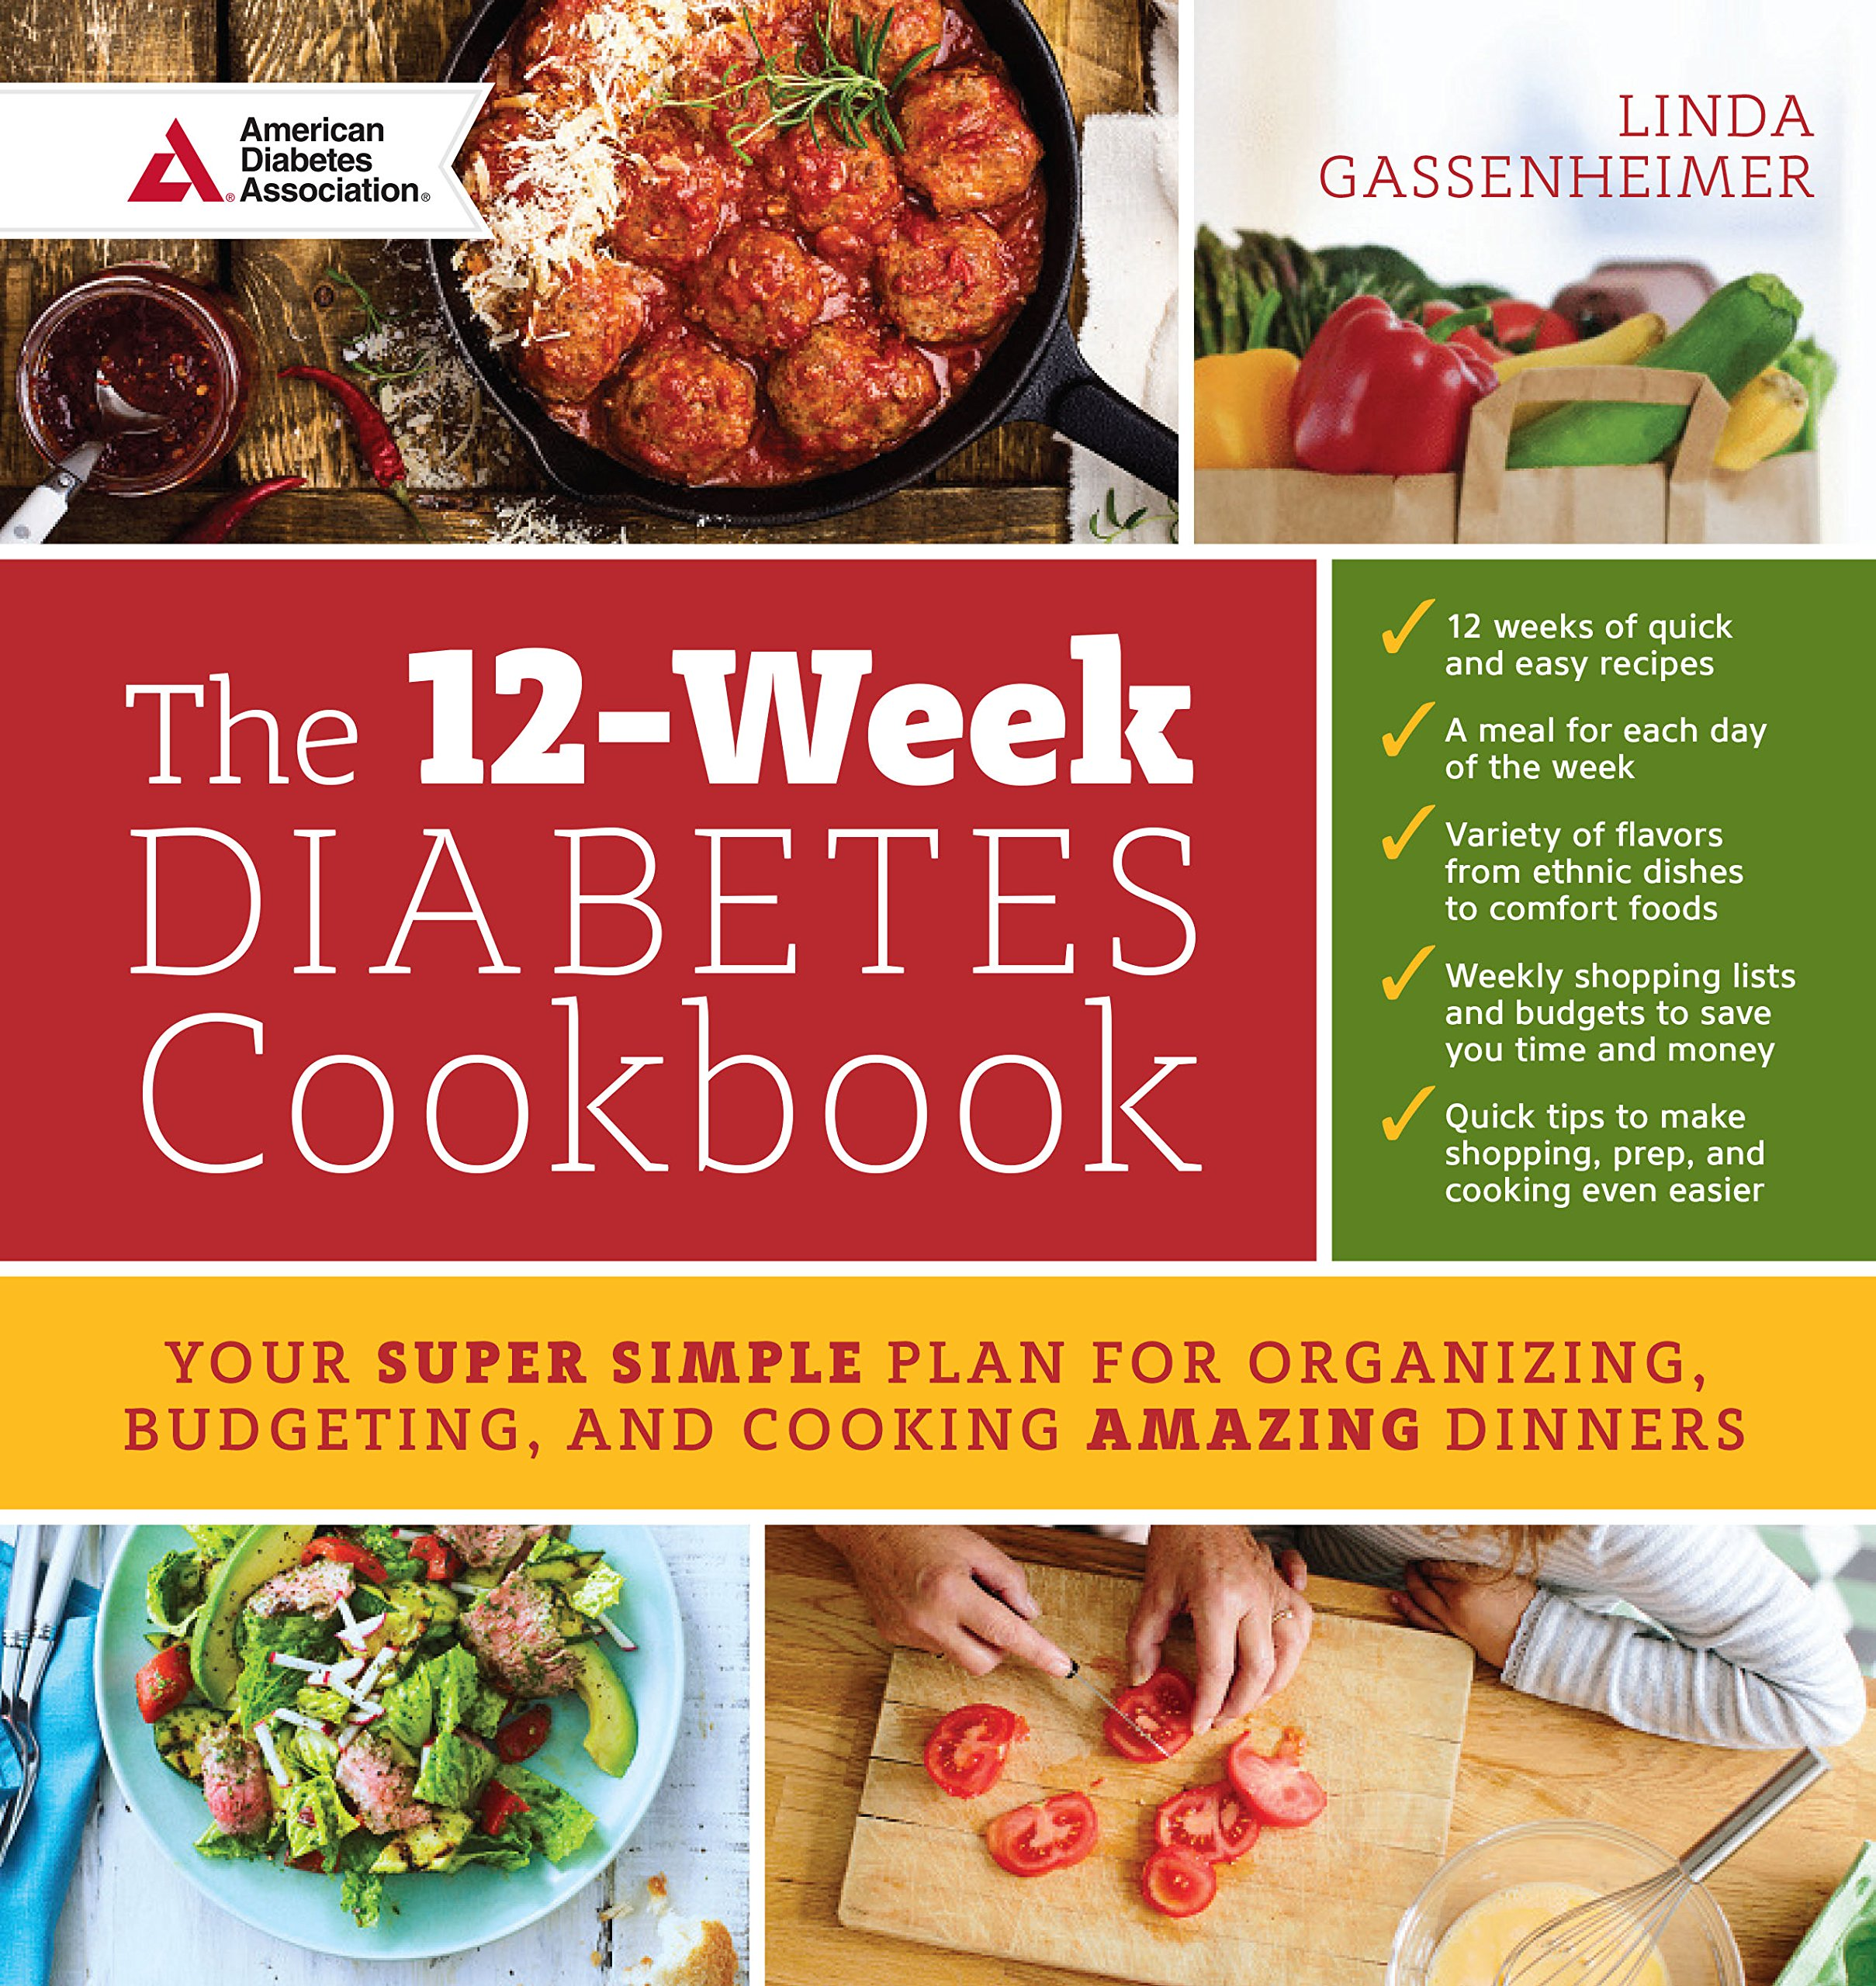 The 12 week diabetes cookbook your super simple plan for organizing the 12 week diabetes cookbook your super simple plan for organizing budgeting and cooking amazing dinners linda gassenheimer 9781580406765 amazon forumfinder Image collections